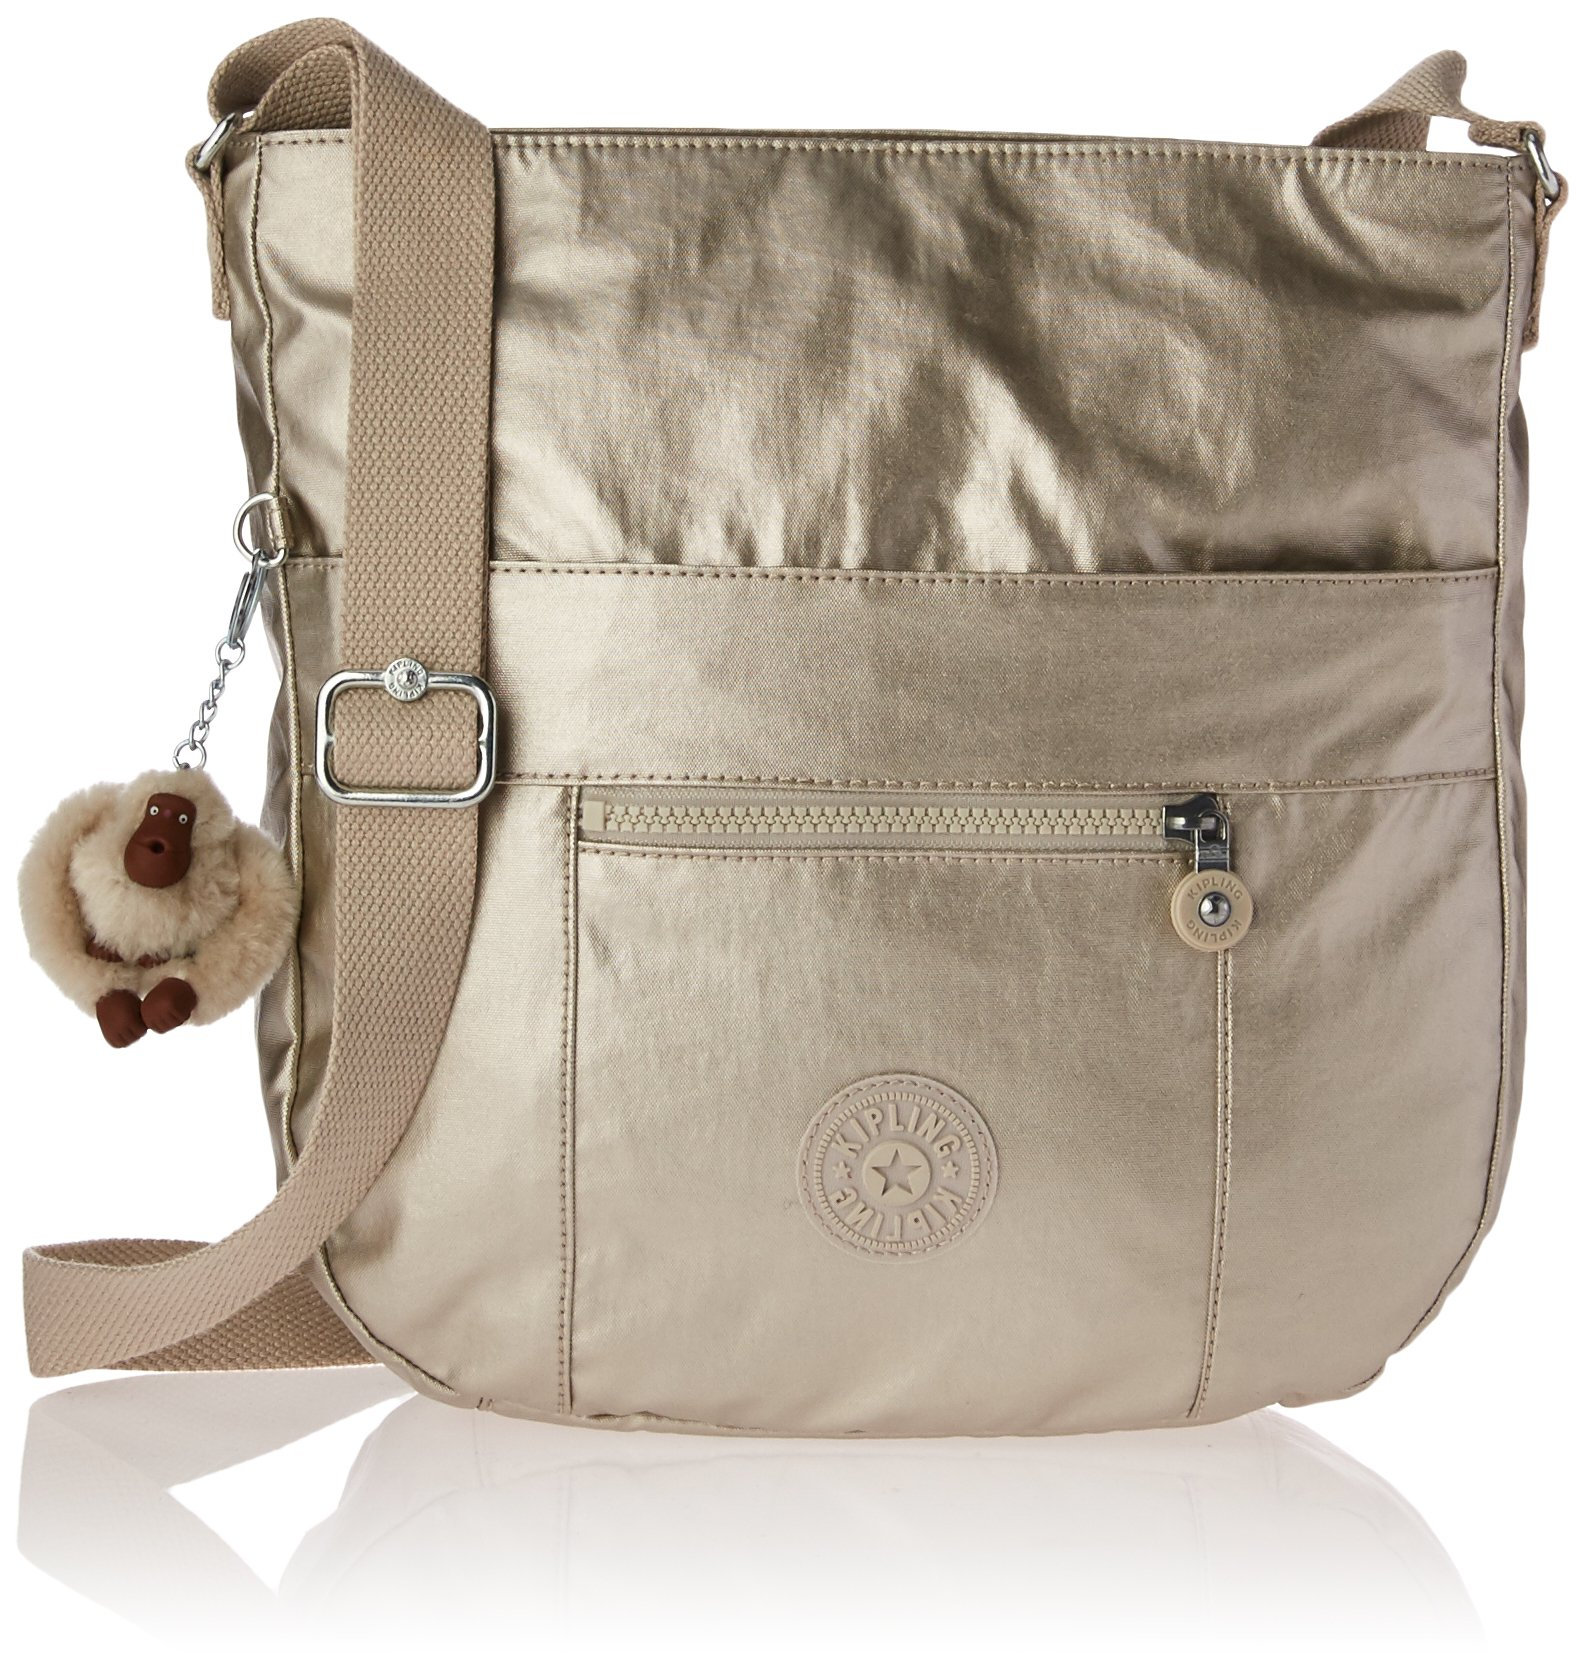 Kipling Bailey Metallic Crossbody Hobo Bag, Cloud Grey/Metallic by Kipling